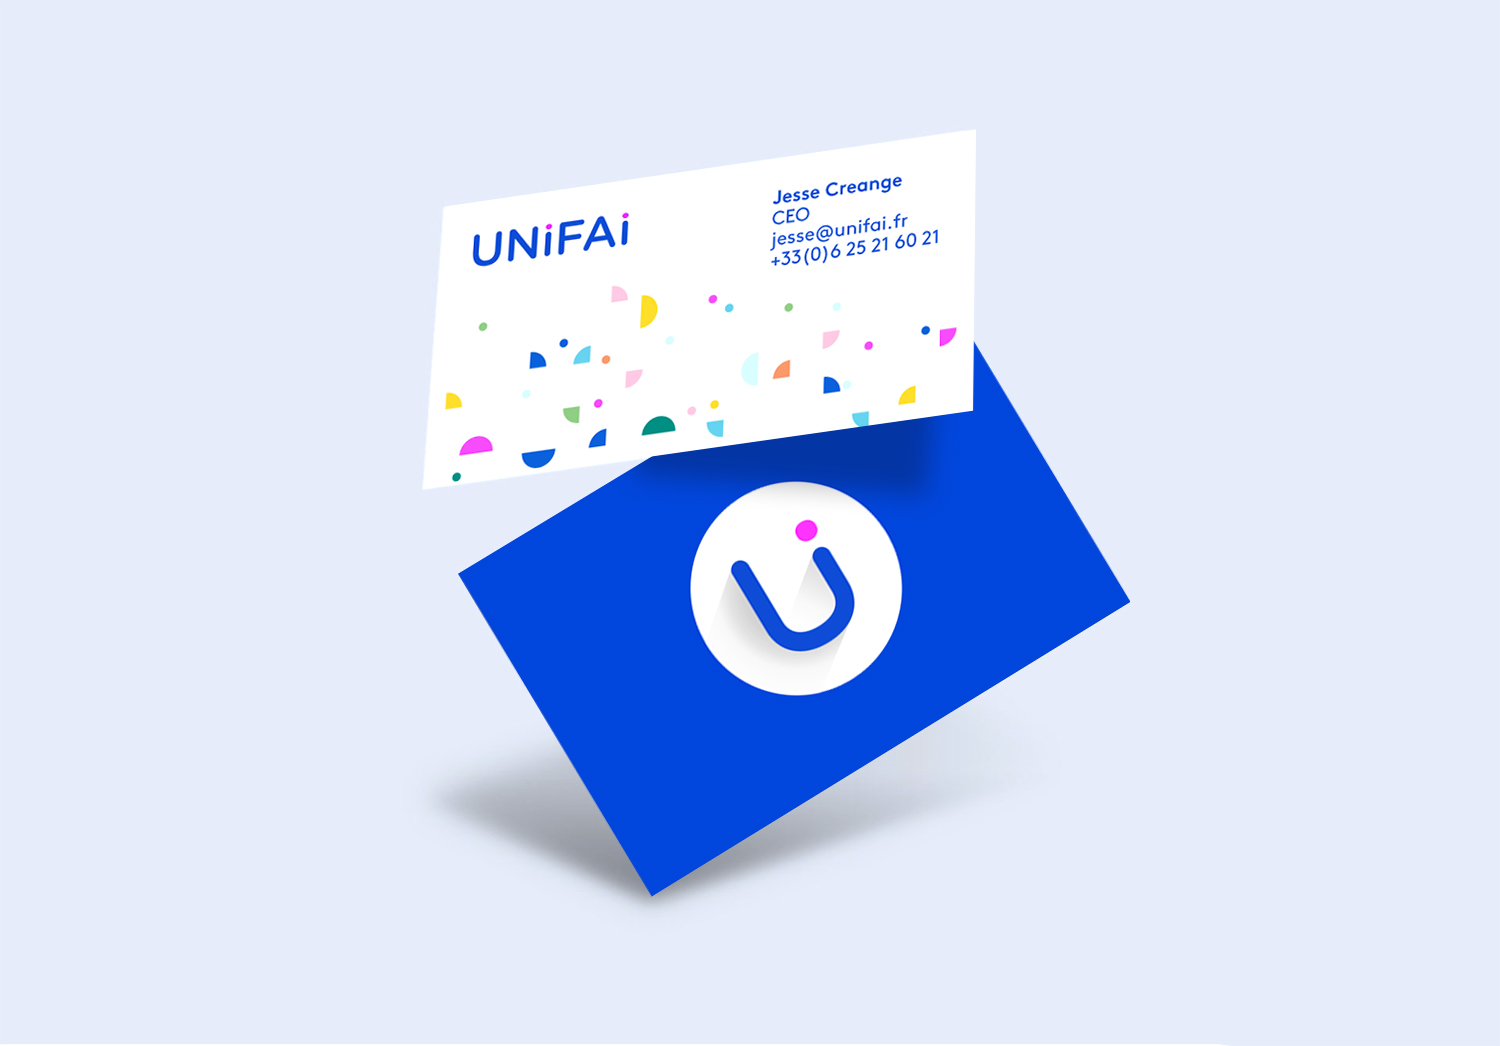 UNiFAi - CARTE DE VISITE